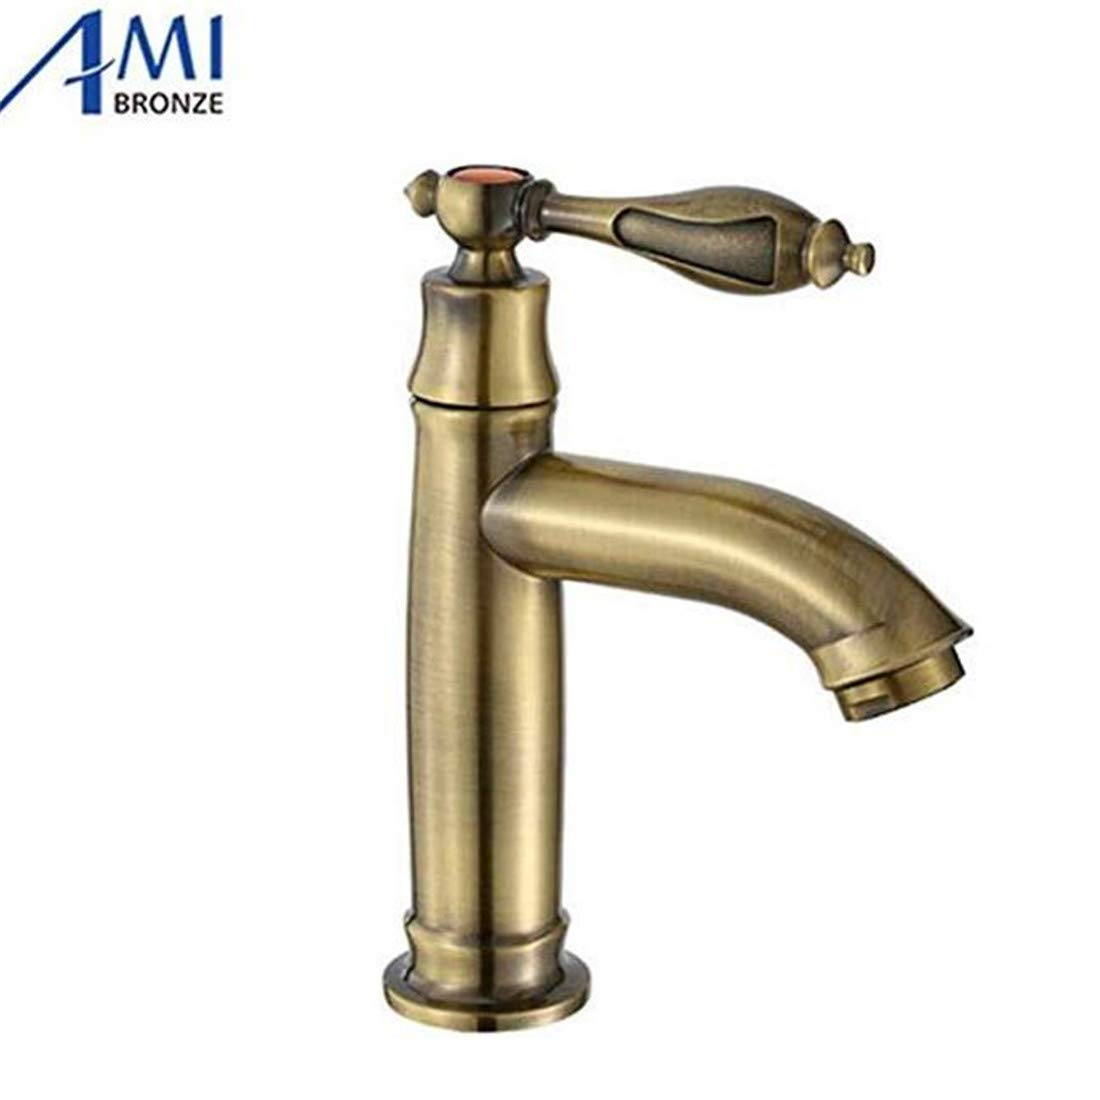 Luxury Modern Hot and Cold Faucet Vintage Platingfaucet Antique Bronze Operation Bathroom Basin Faucets Kitchen Brass Crane